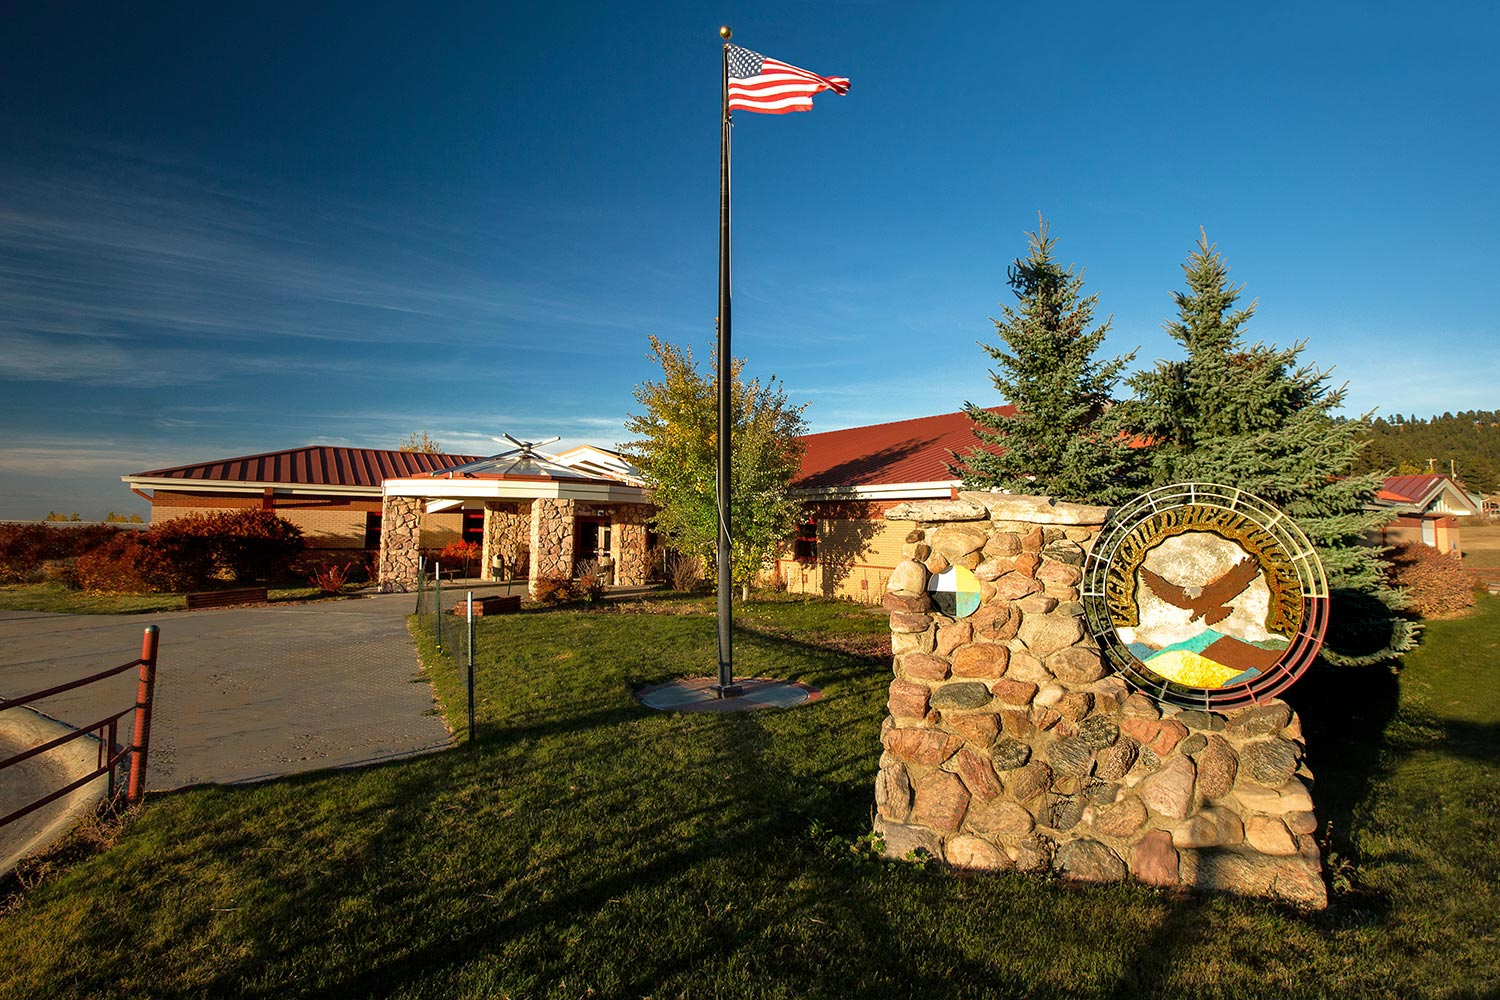 The Eagle Child Health Center in Hays, Montana.